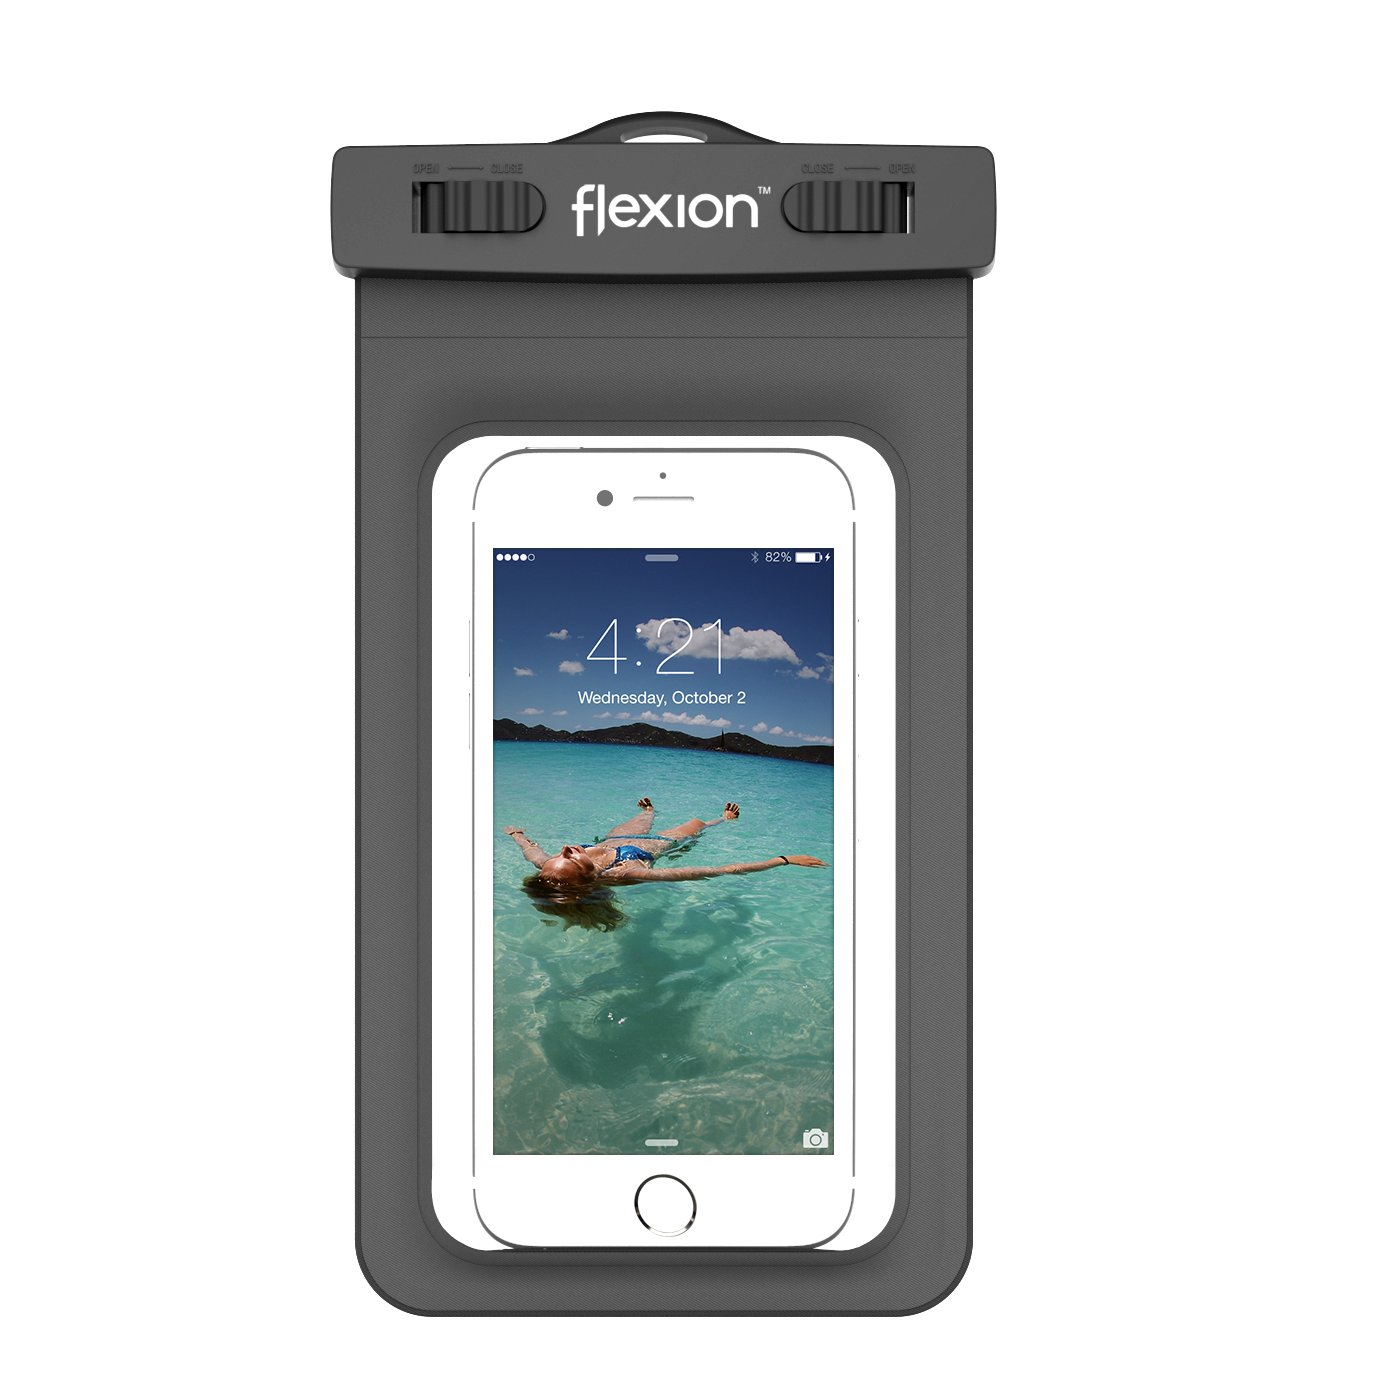 Flexion Kinetic Series Waterproof Case for Apple iPhone 6, 5S, 5C, 5, Samsung Galaxy S6 and S6 Edge S5, S4 (Black)